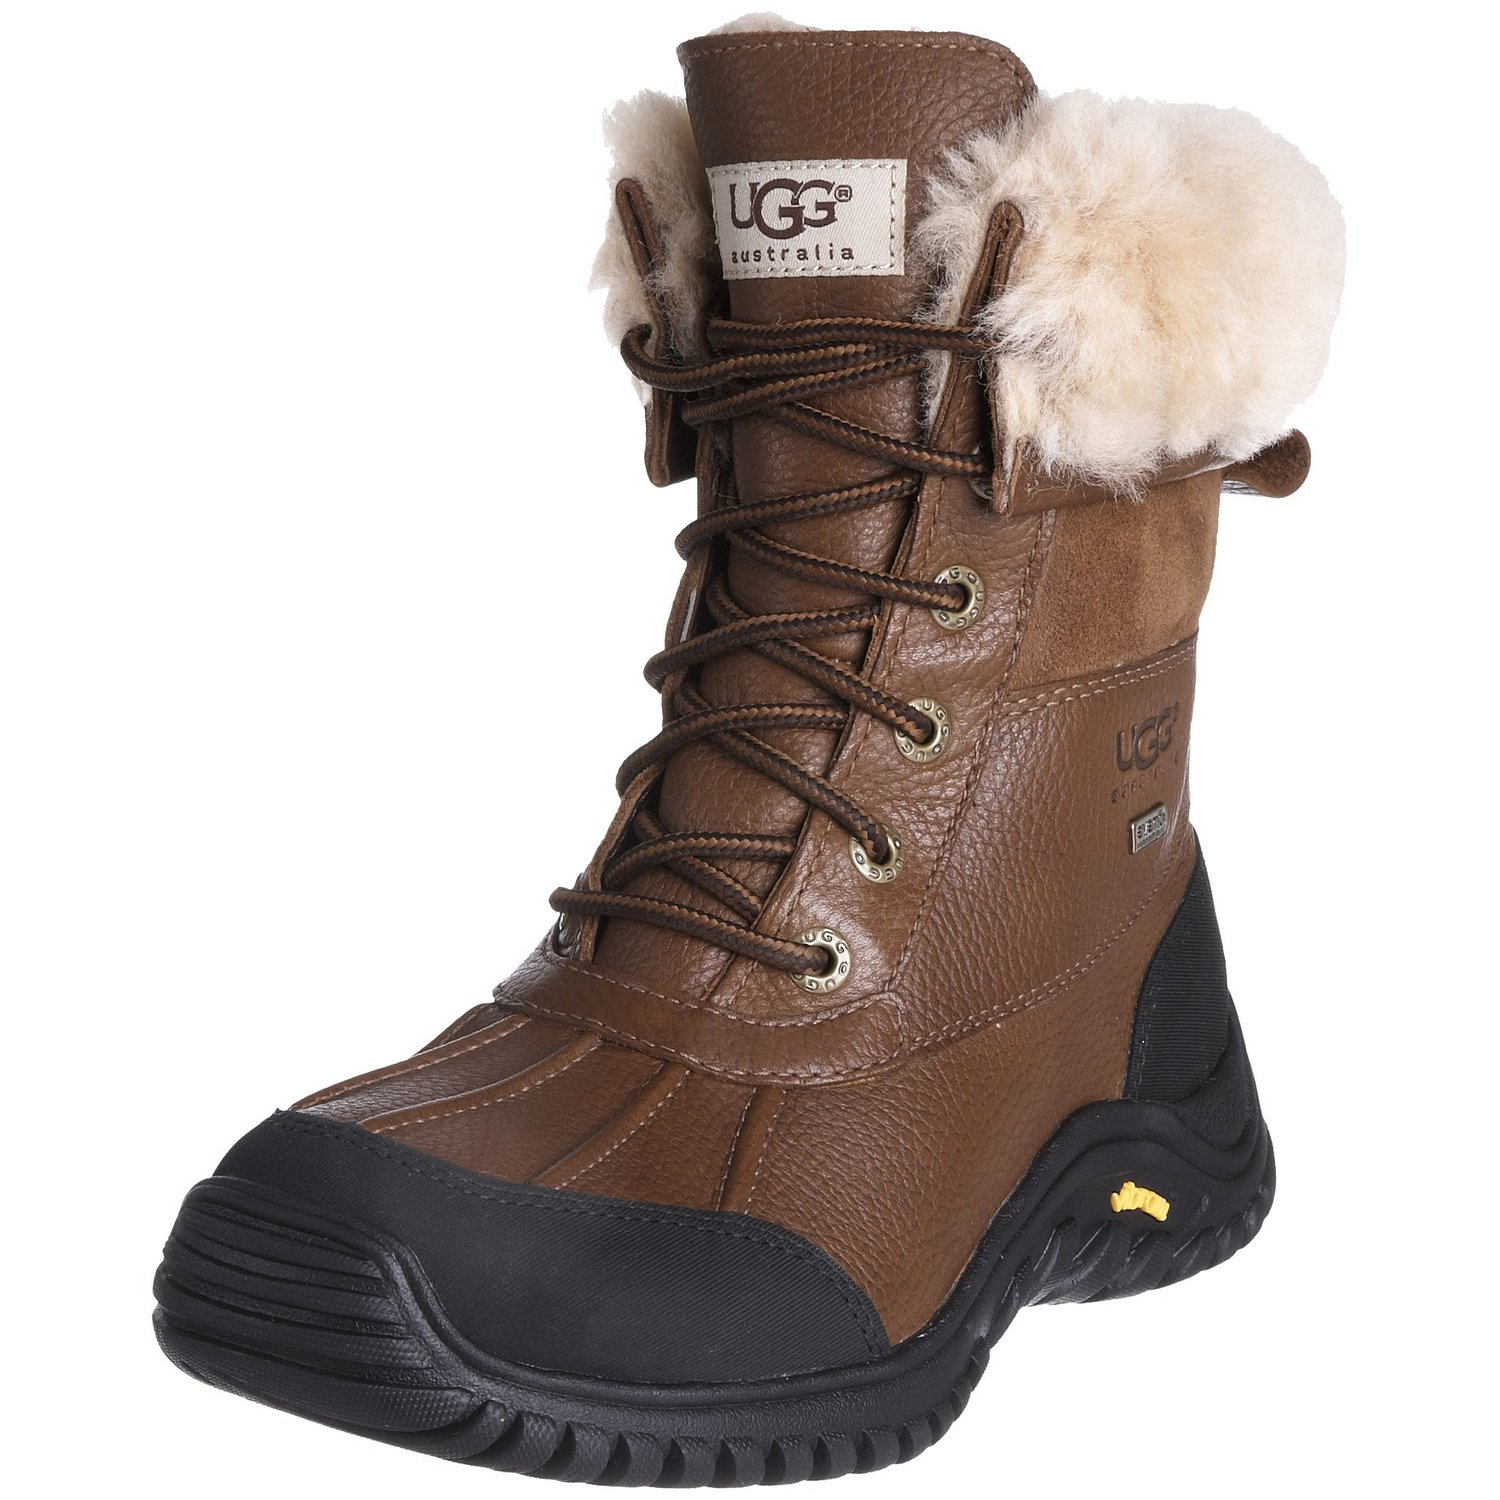 Innovative Shoes Ugg Boots Chestnut Ugg Boots Boots With Laces ...